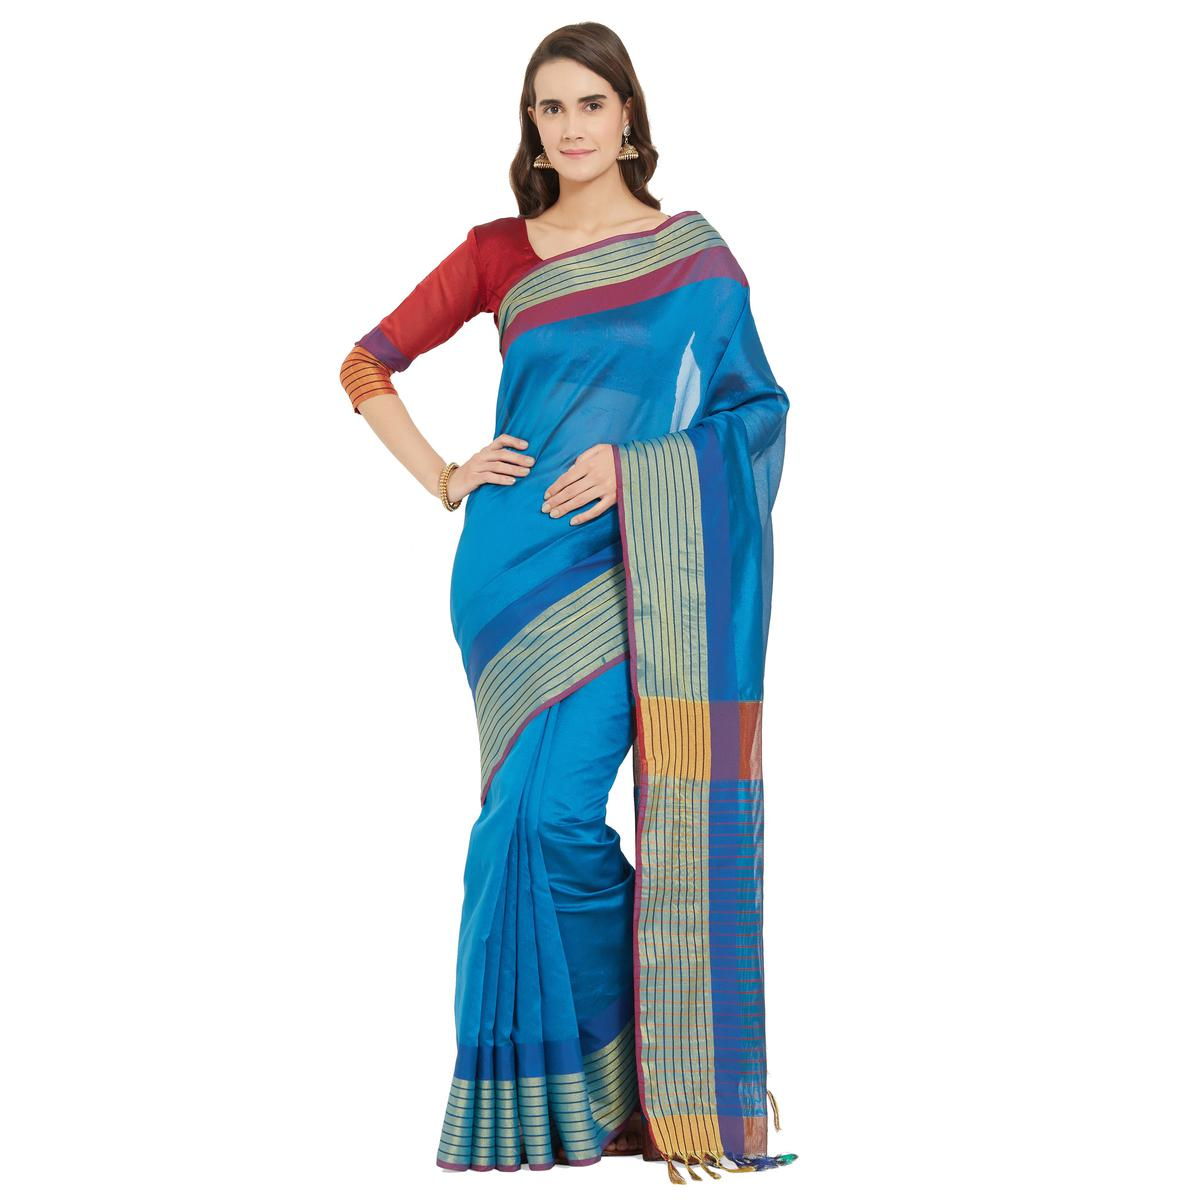 Elegant Teal Blue Colored Festive Wear Woven Cotton Silk Saree With Matching Blouse.